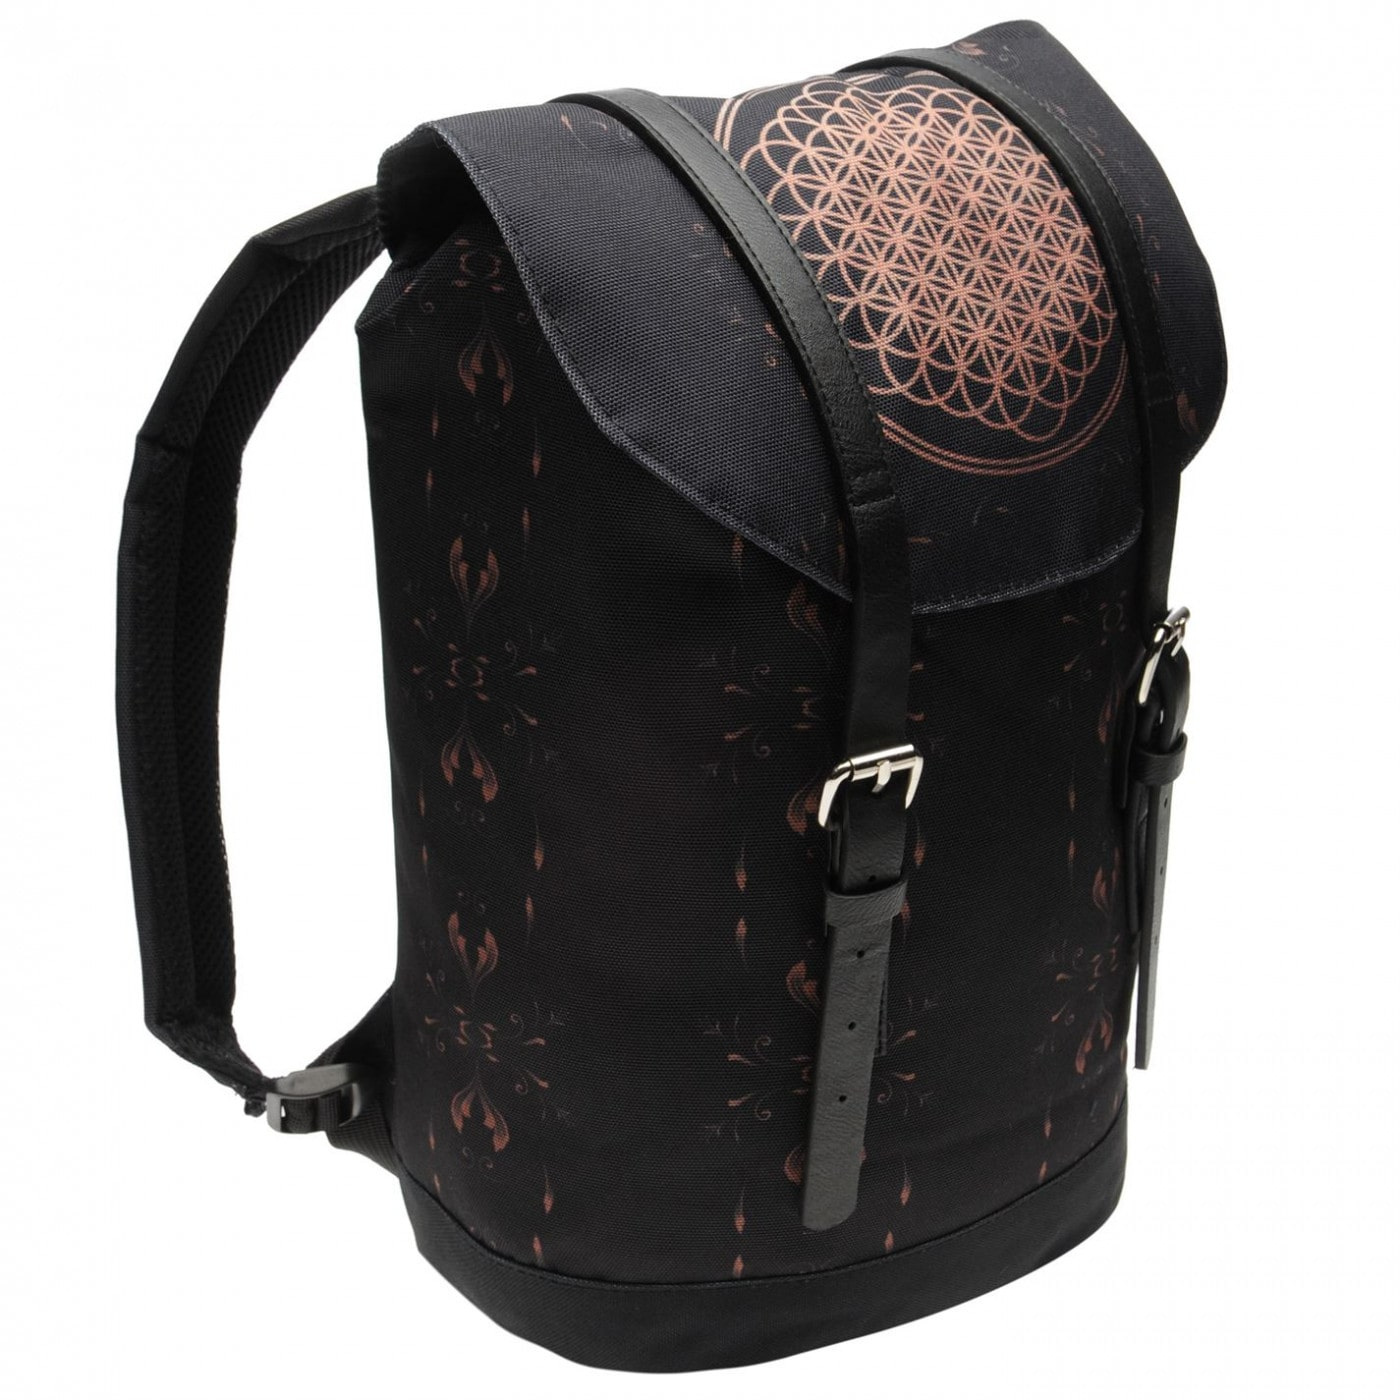 Rocksax Heritage Backpack